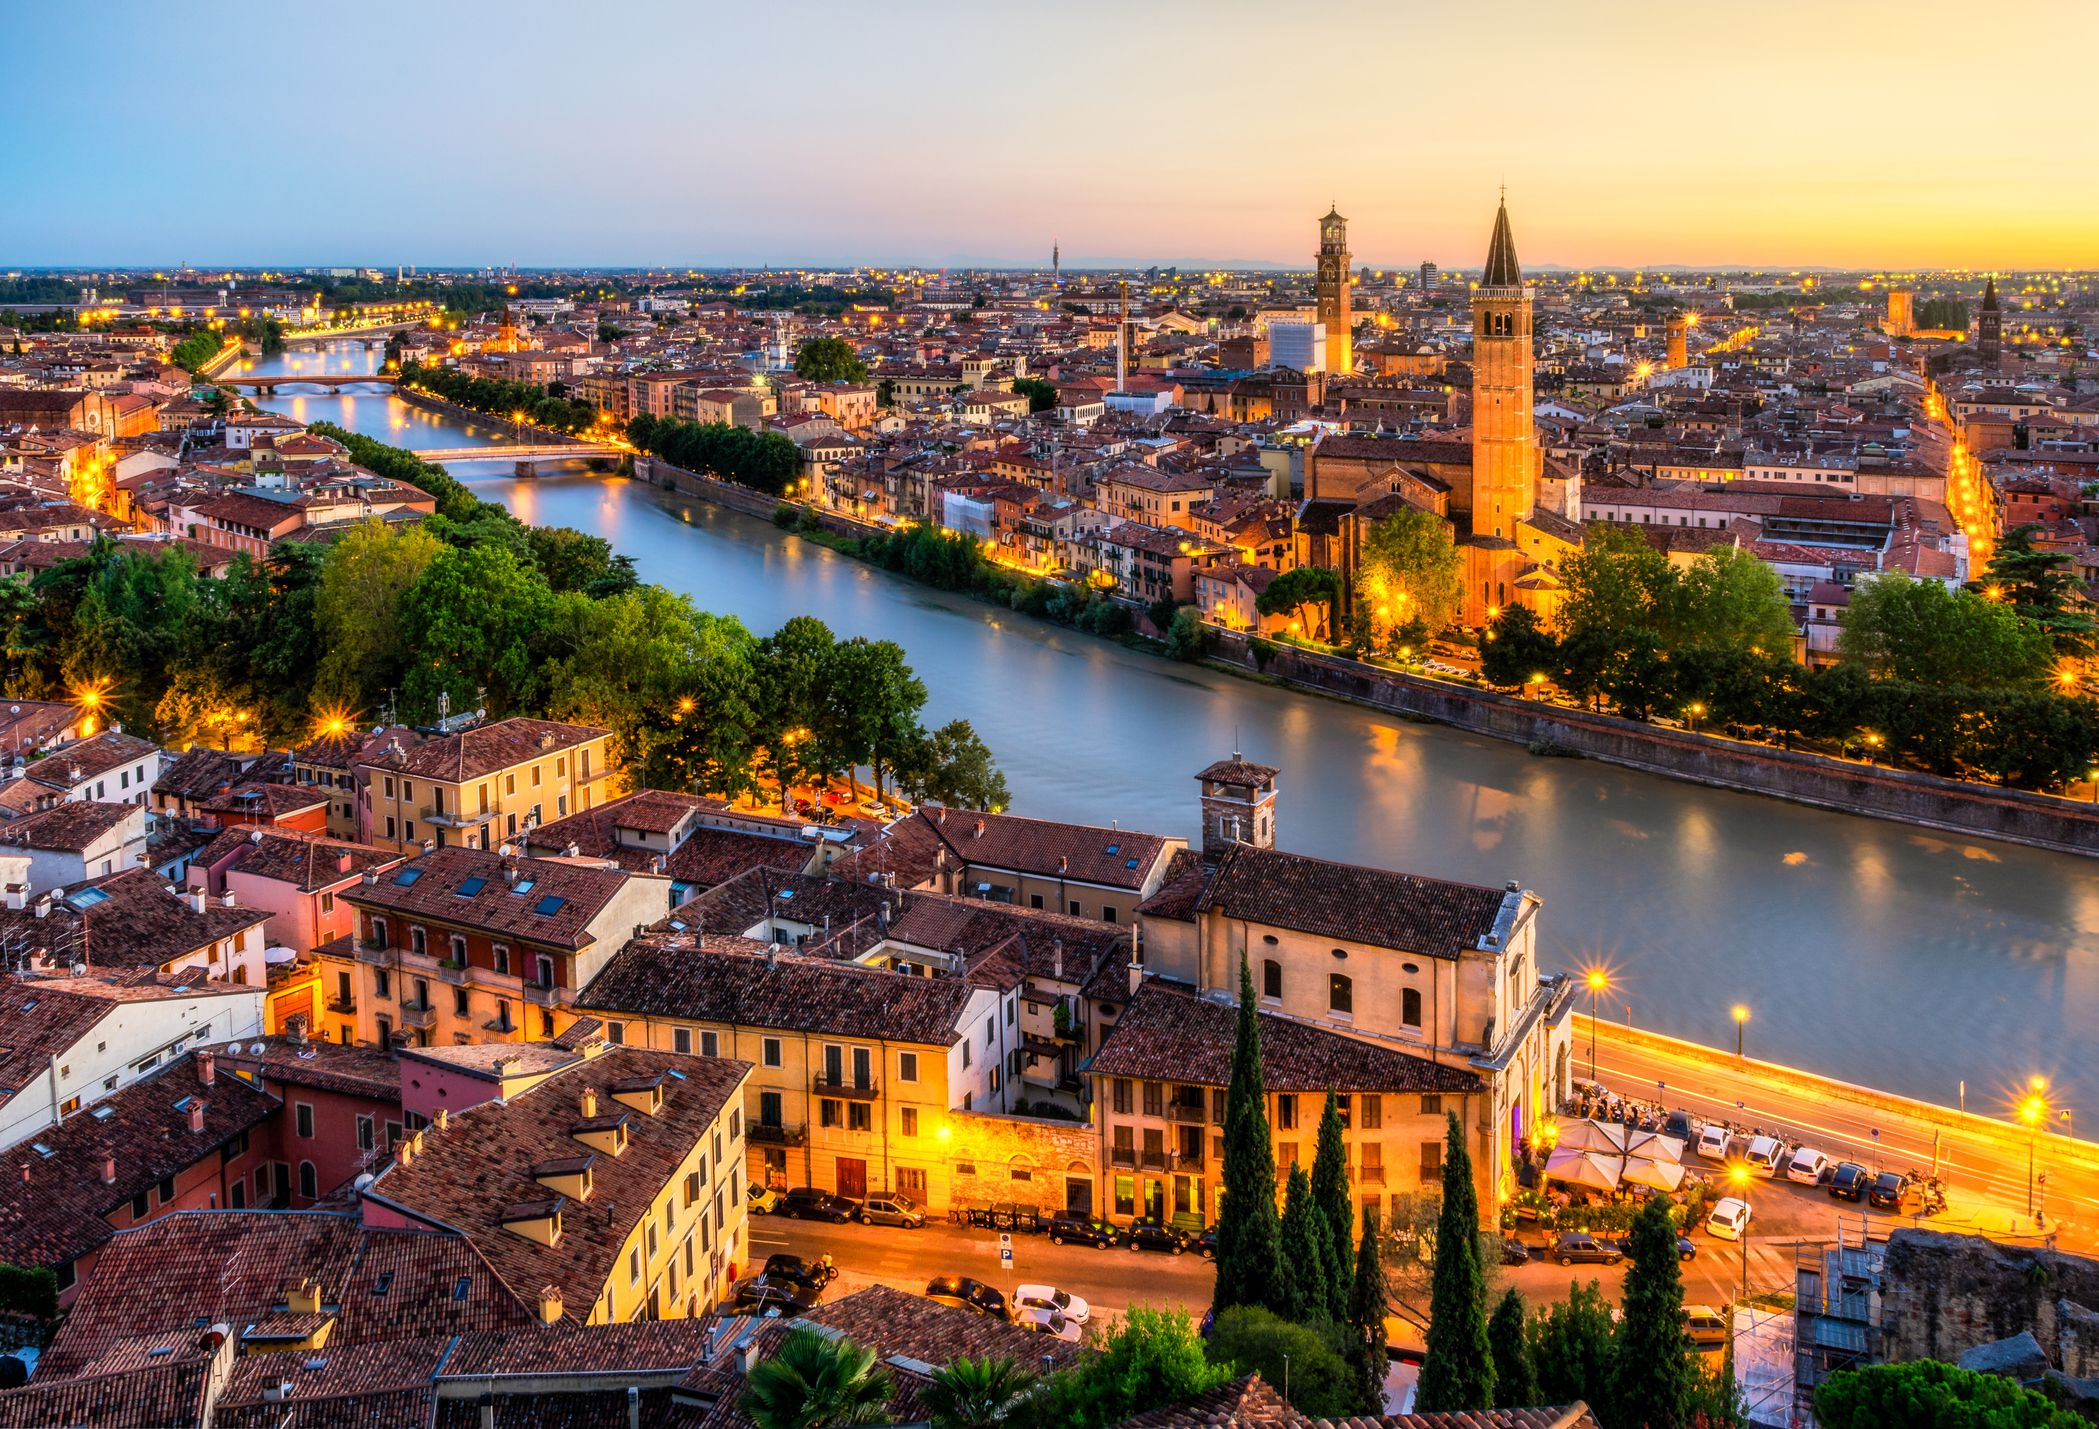 Fair Verona: What to See in the City of Romeo and Juliet